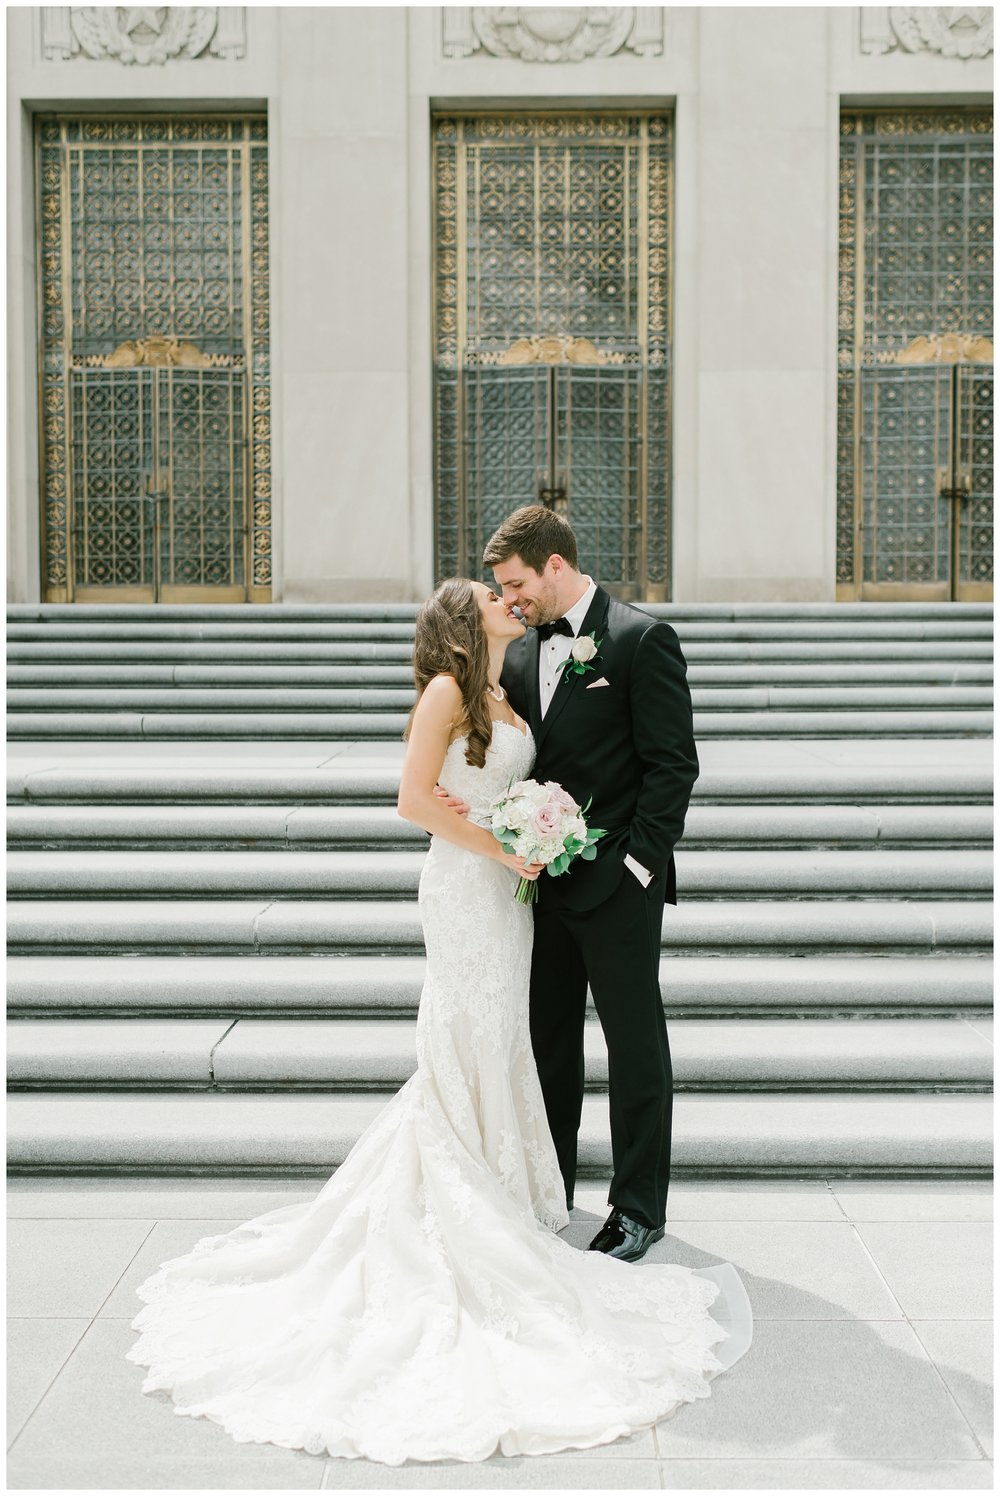 Rebecca_Bridges_Photography_Indianapolis_Wedding_Photographer_6825.jpg